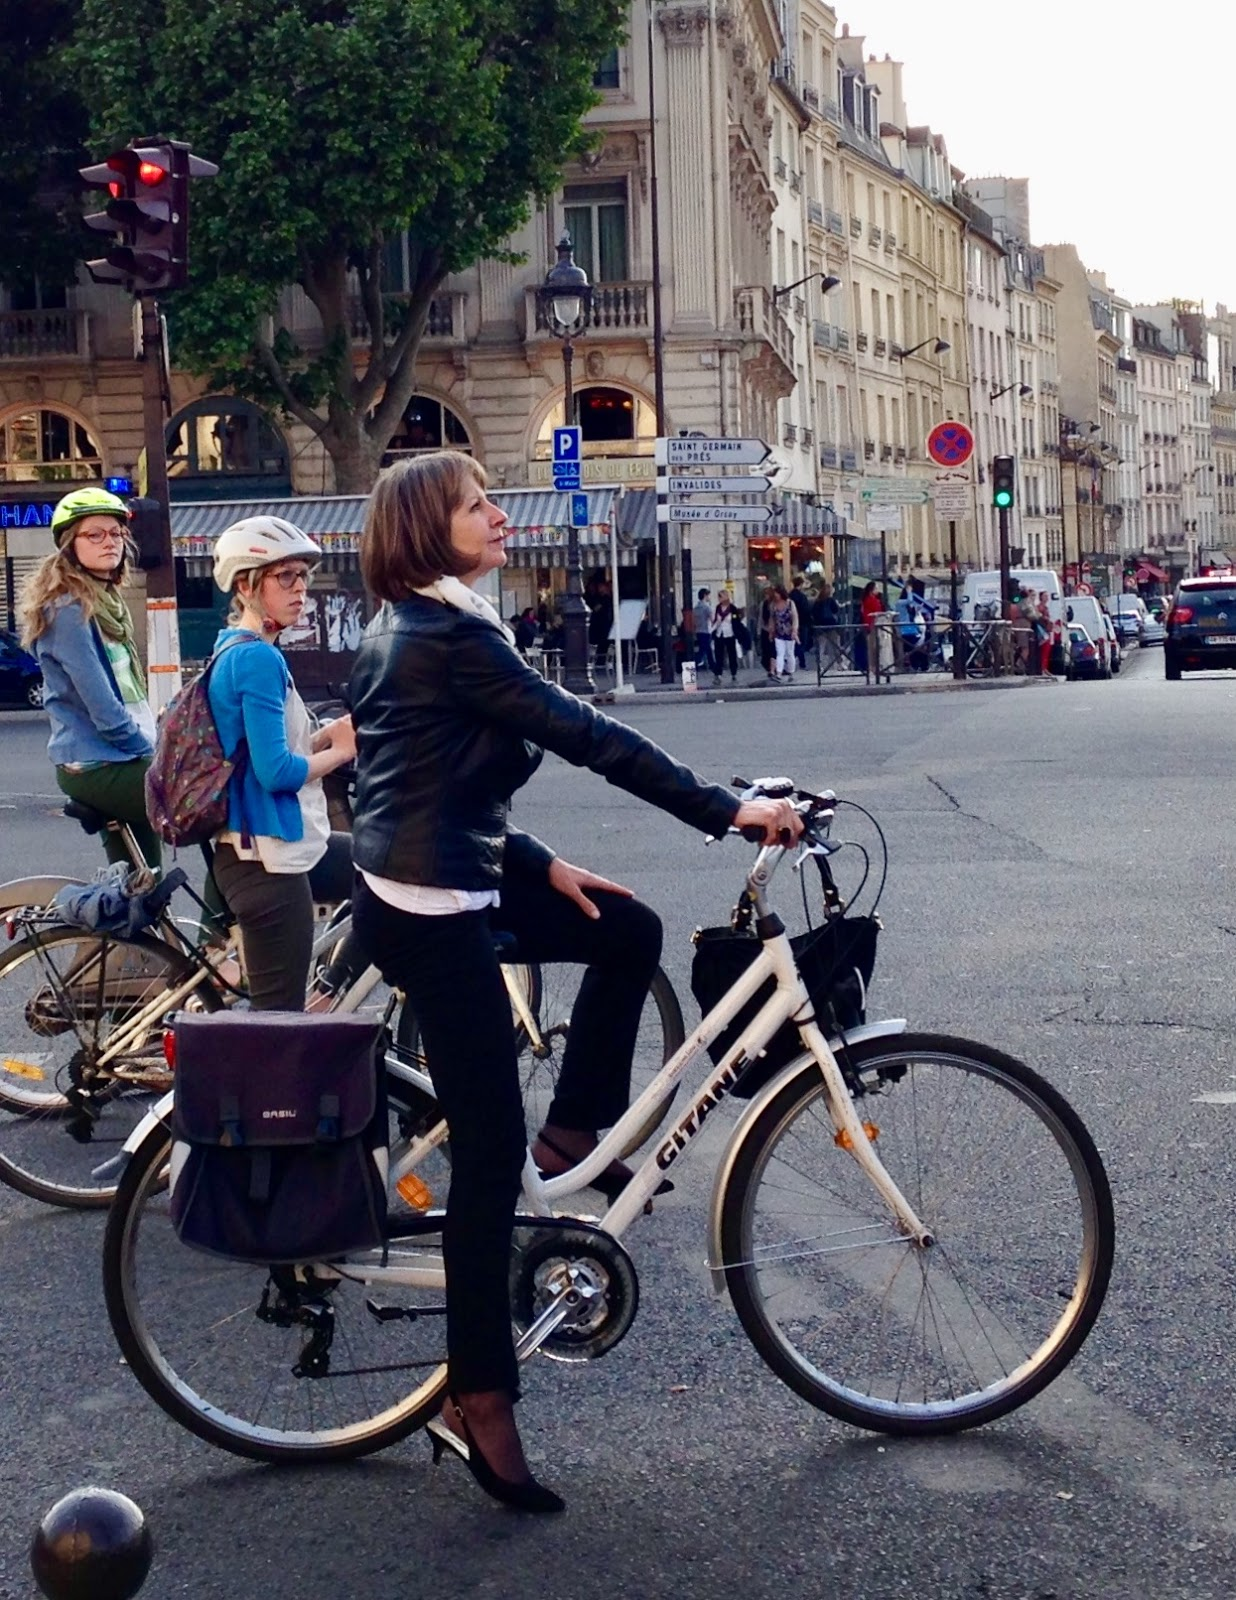 Glamorous cyclists are everywhere in Paris.